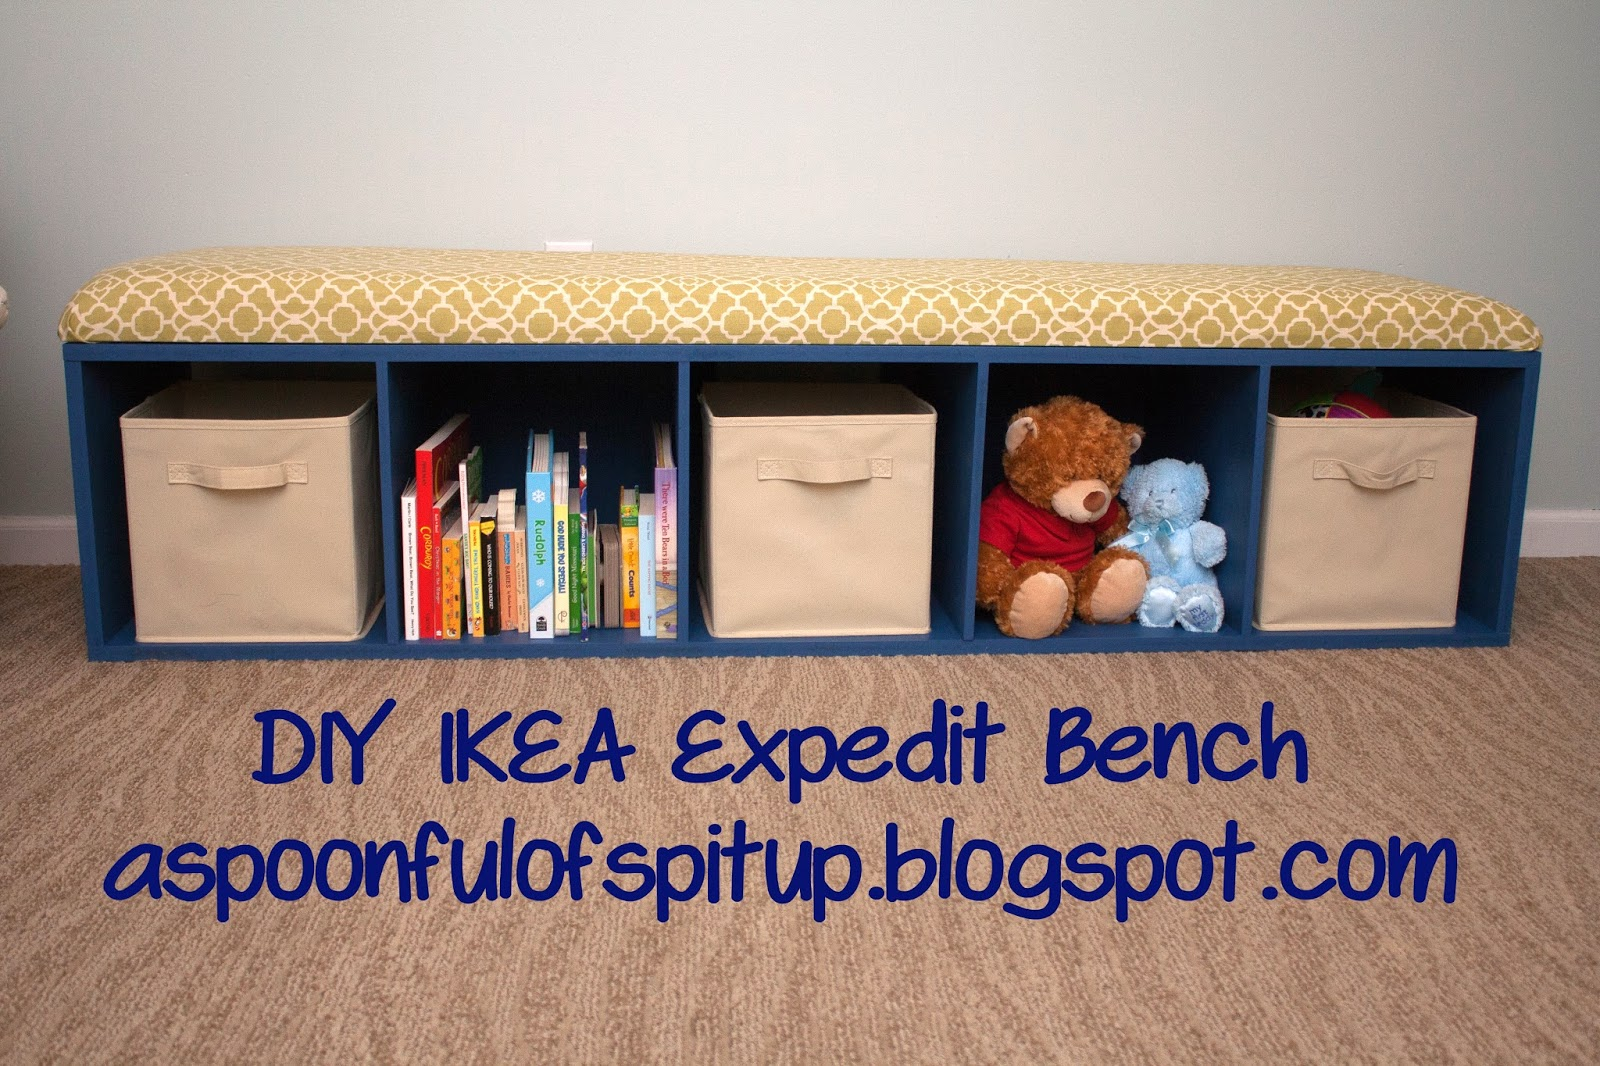 Ikea Expedit Cut In Half A Spoonful Of Spit Up Diy Expedit Bench